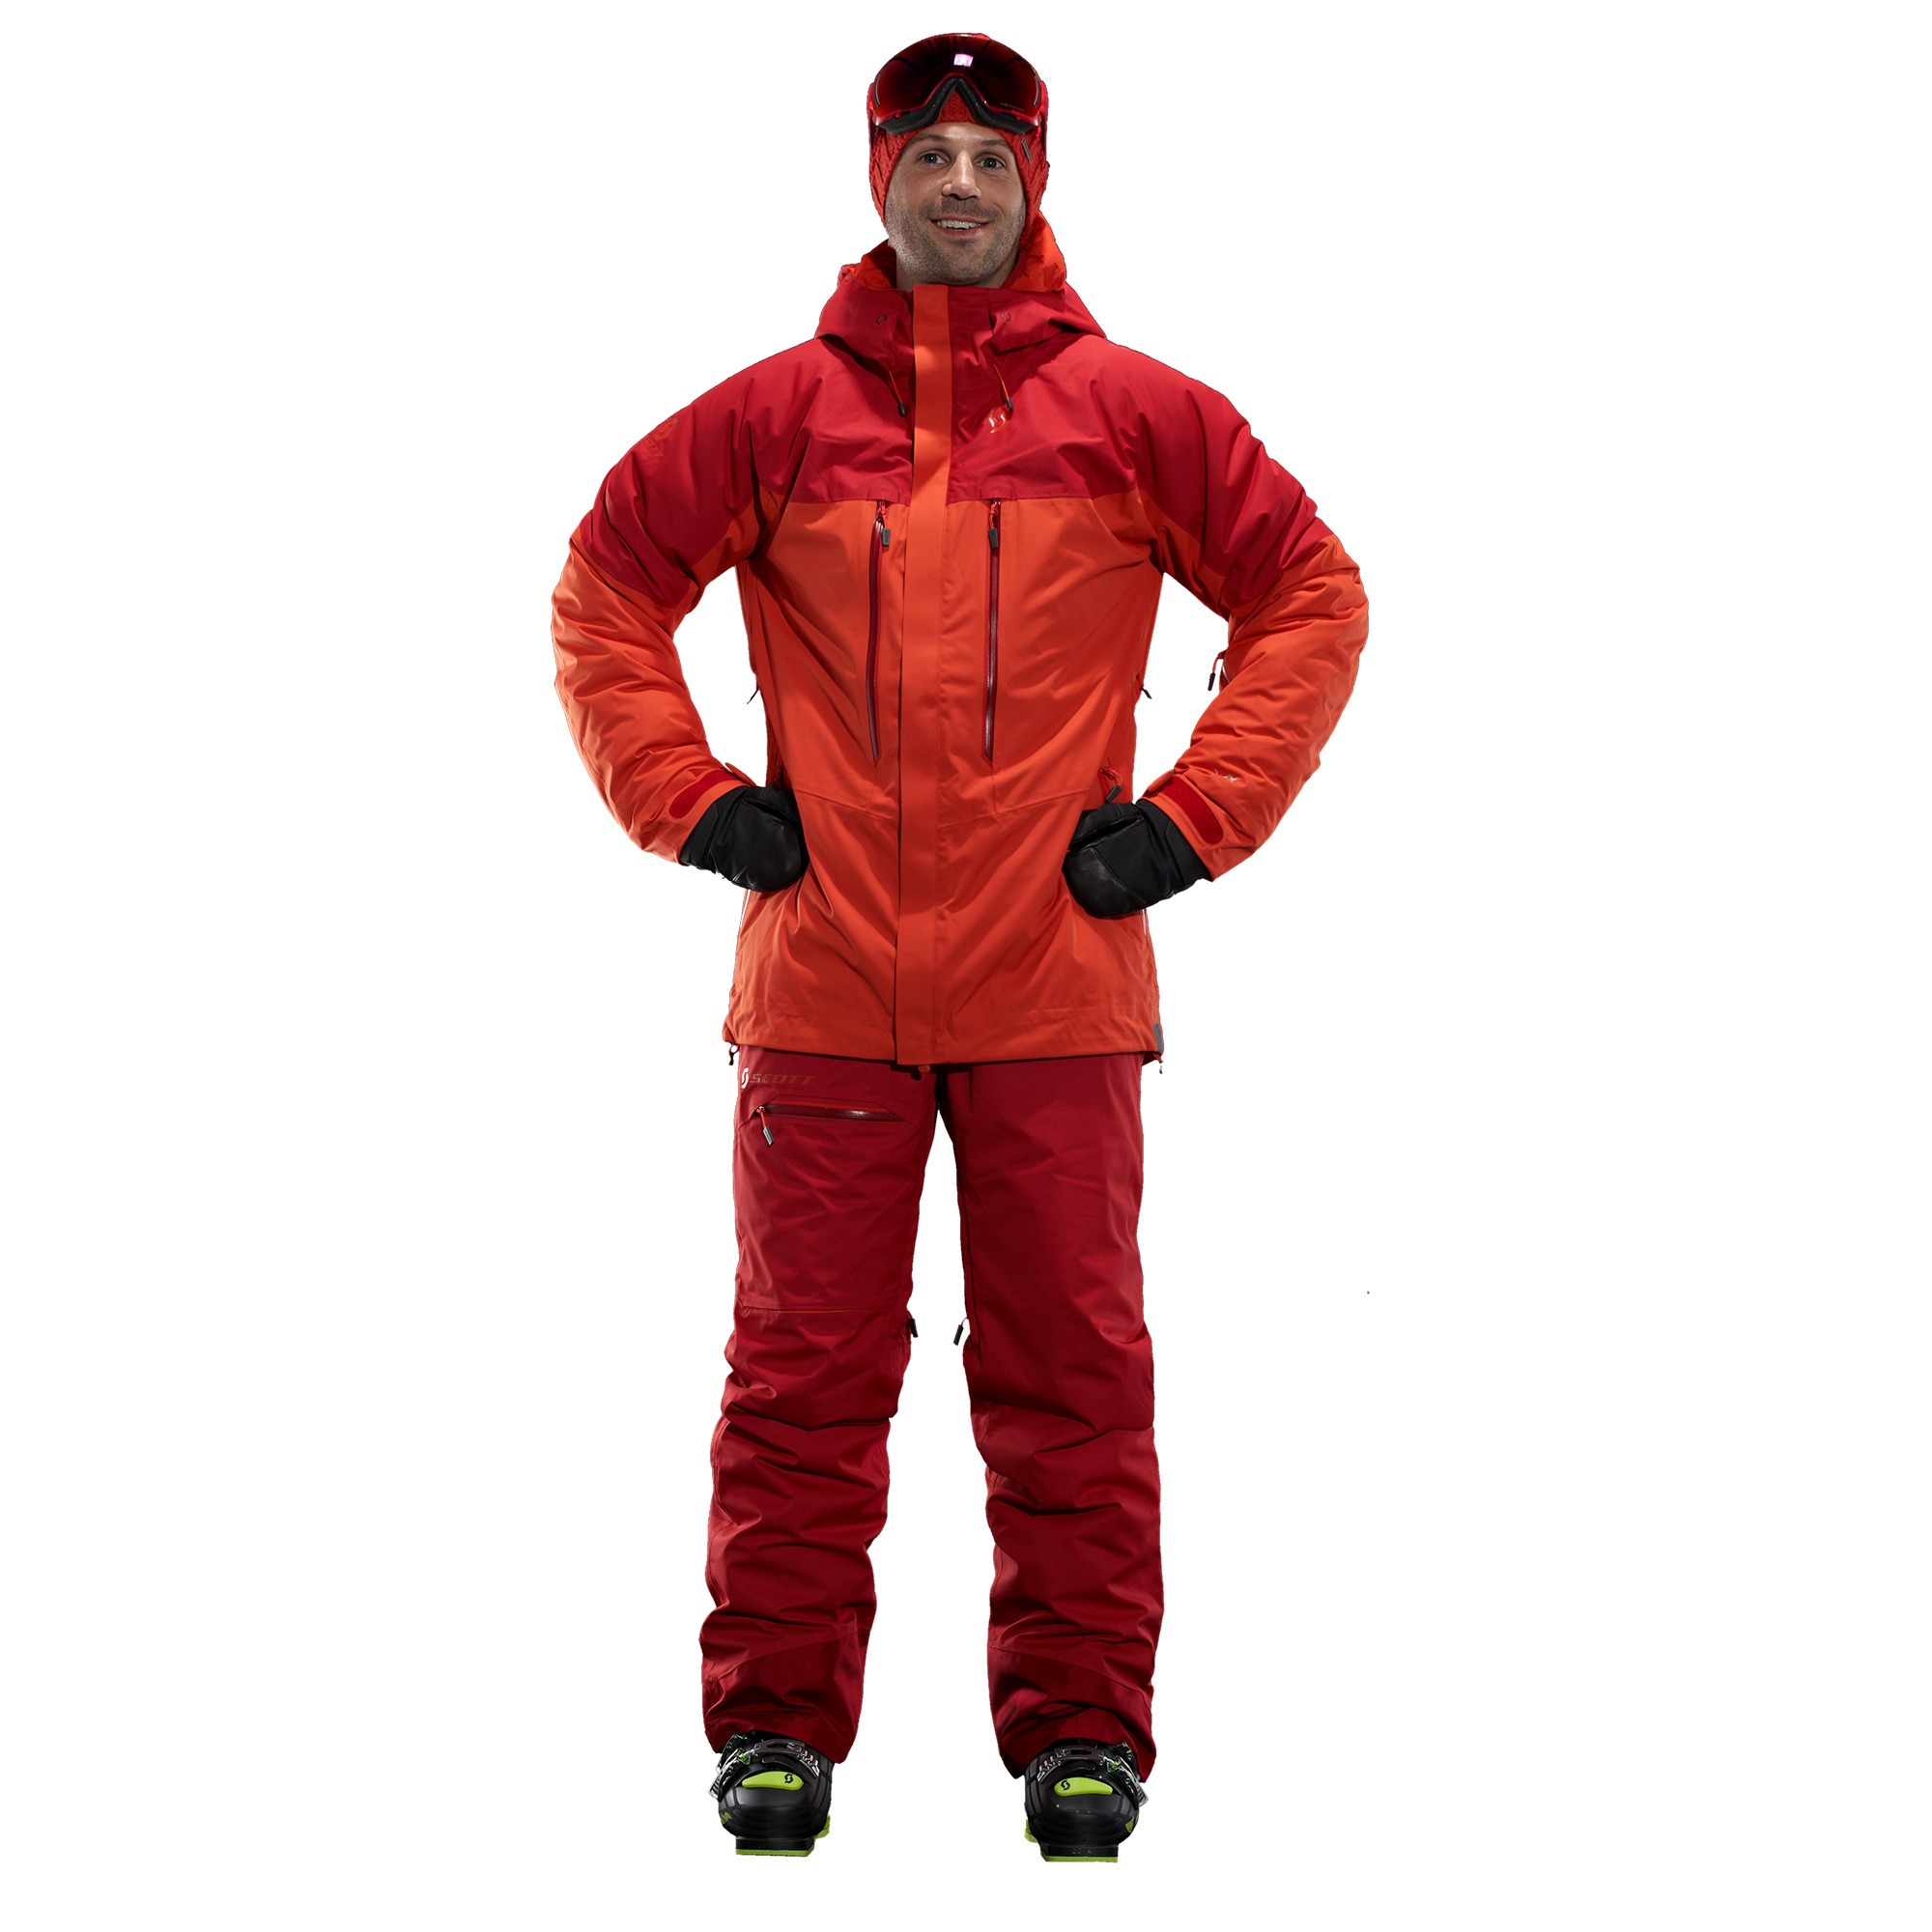 SCOTT Vertic 2L Insulated Pant